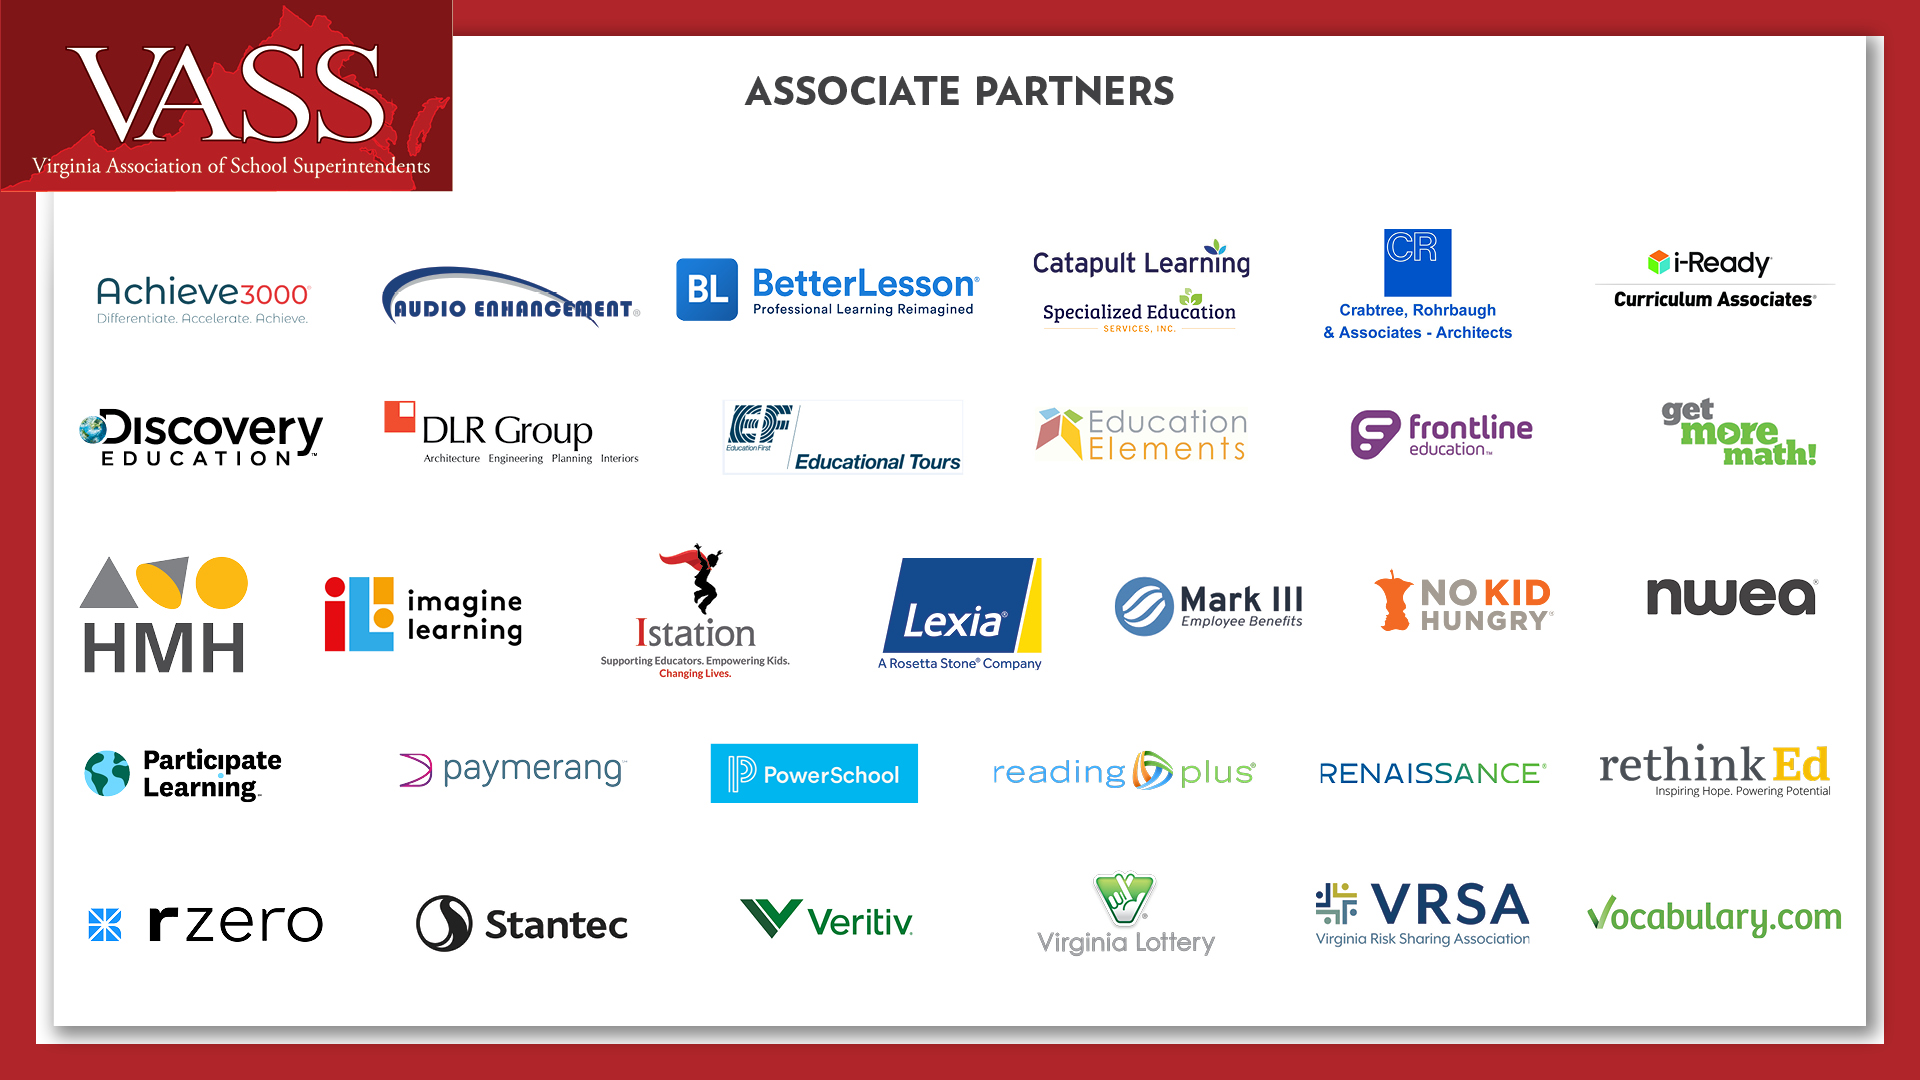 VASS Thanks Our Associate Partners For Their Generous Support